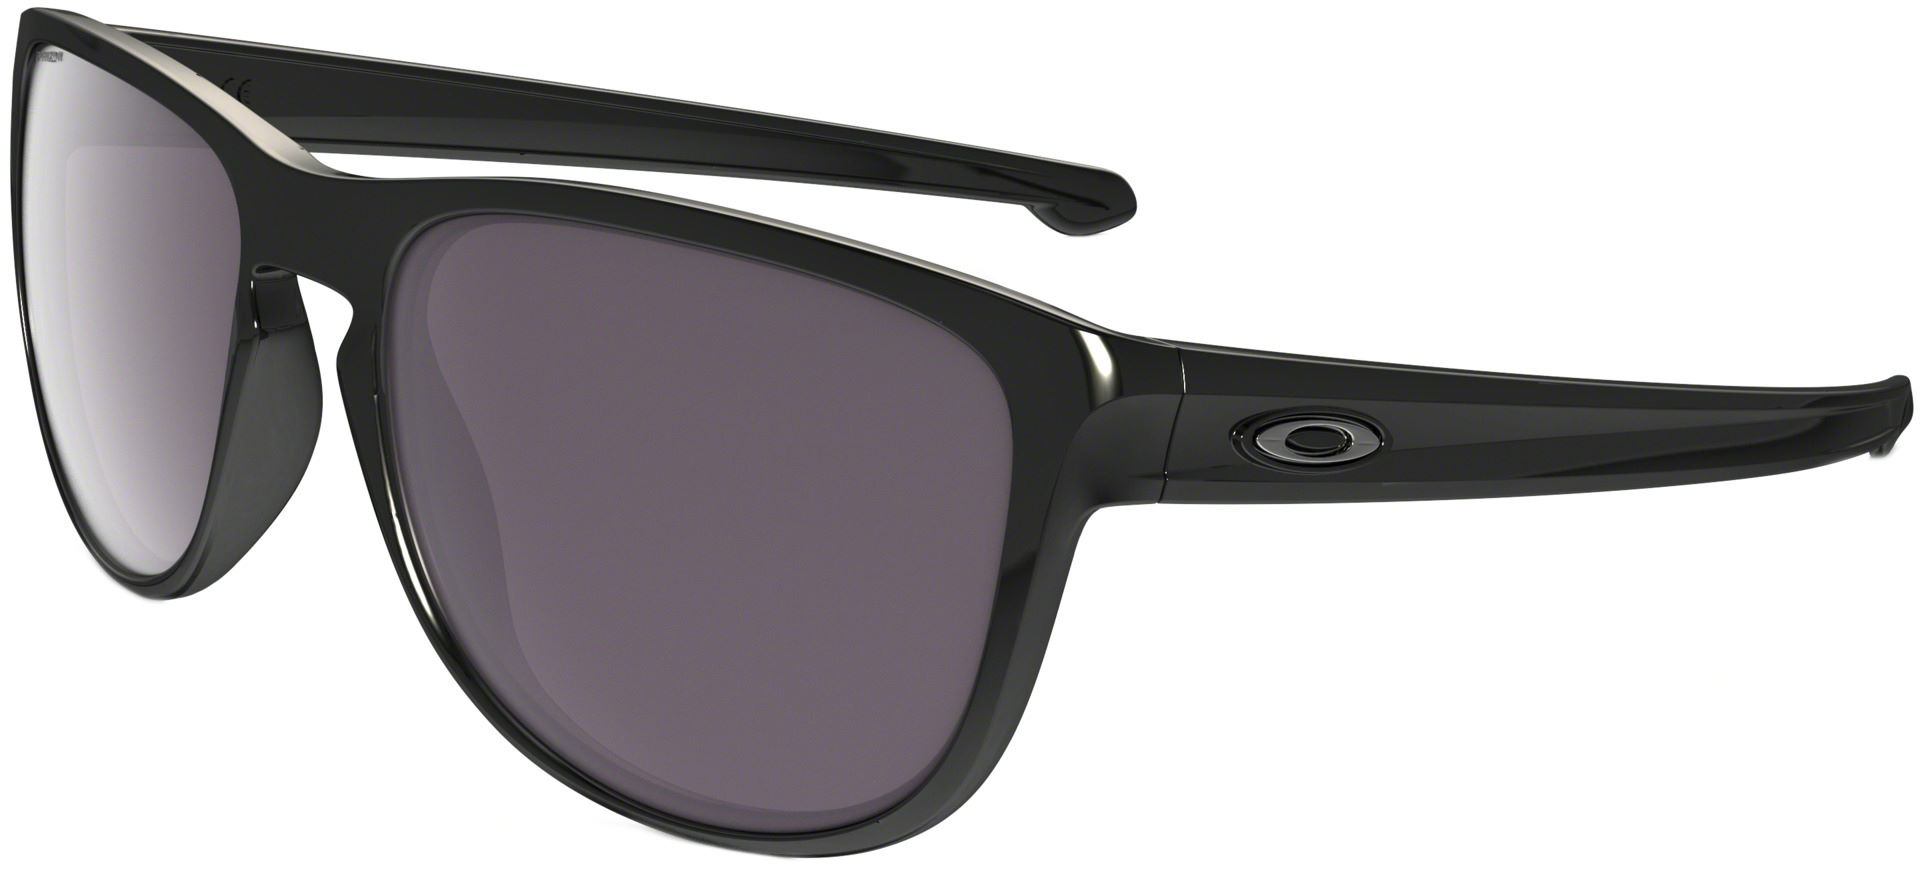 oakley sunglasses price  Wiggle